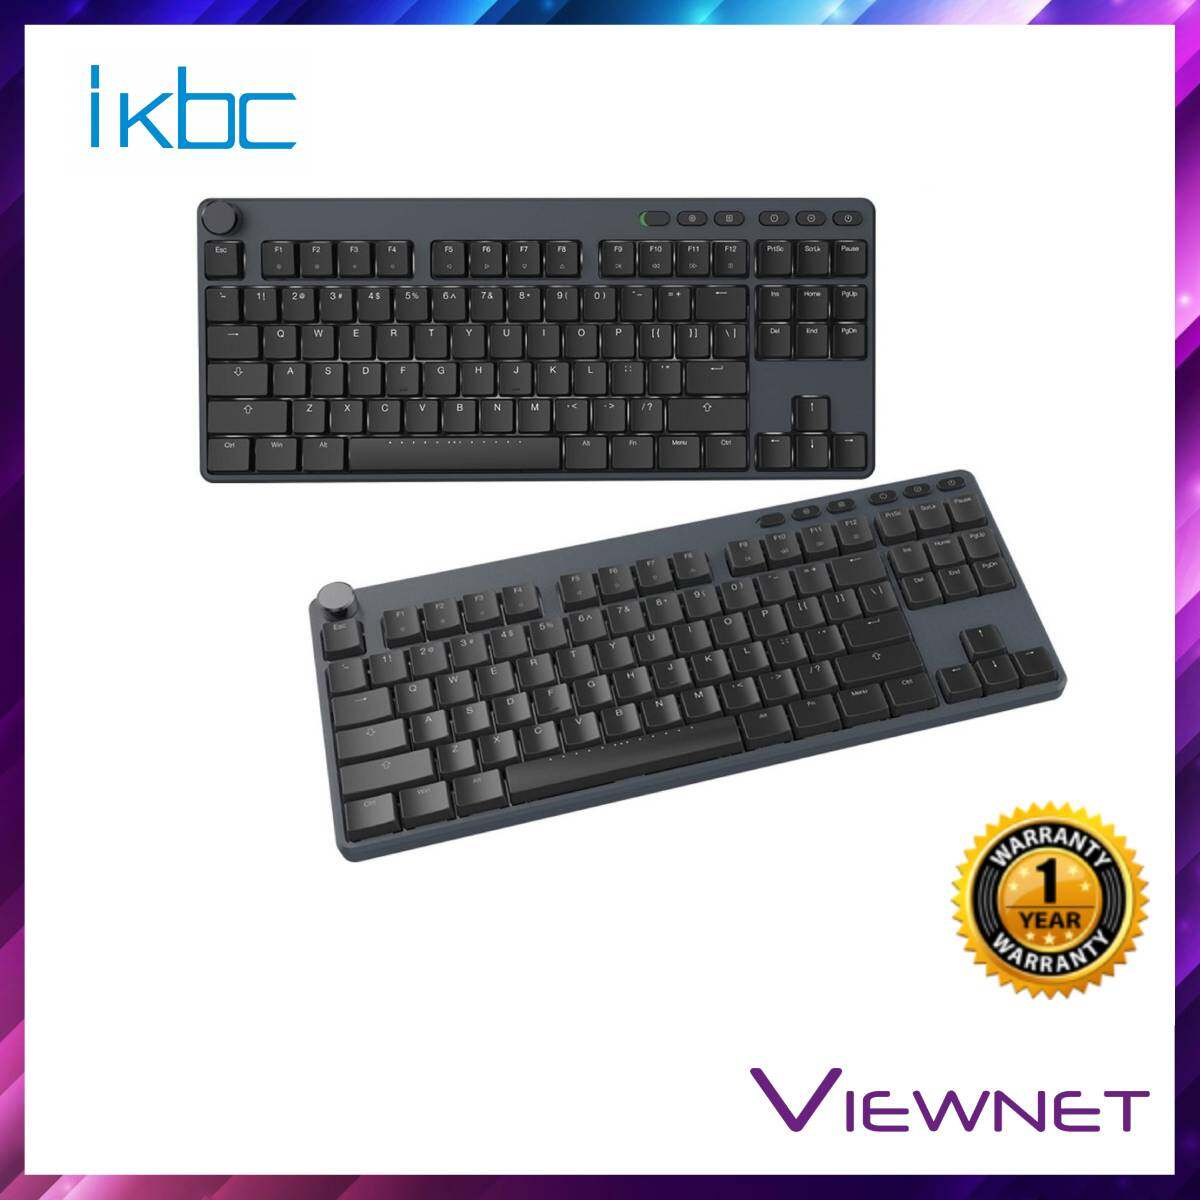 IKBC Gaming Wired X400 Cherry MX Low Profile Red Switch Keyboard